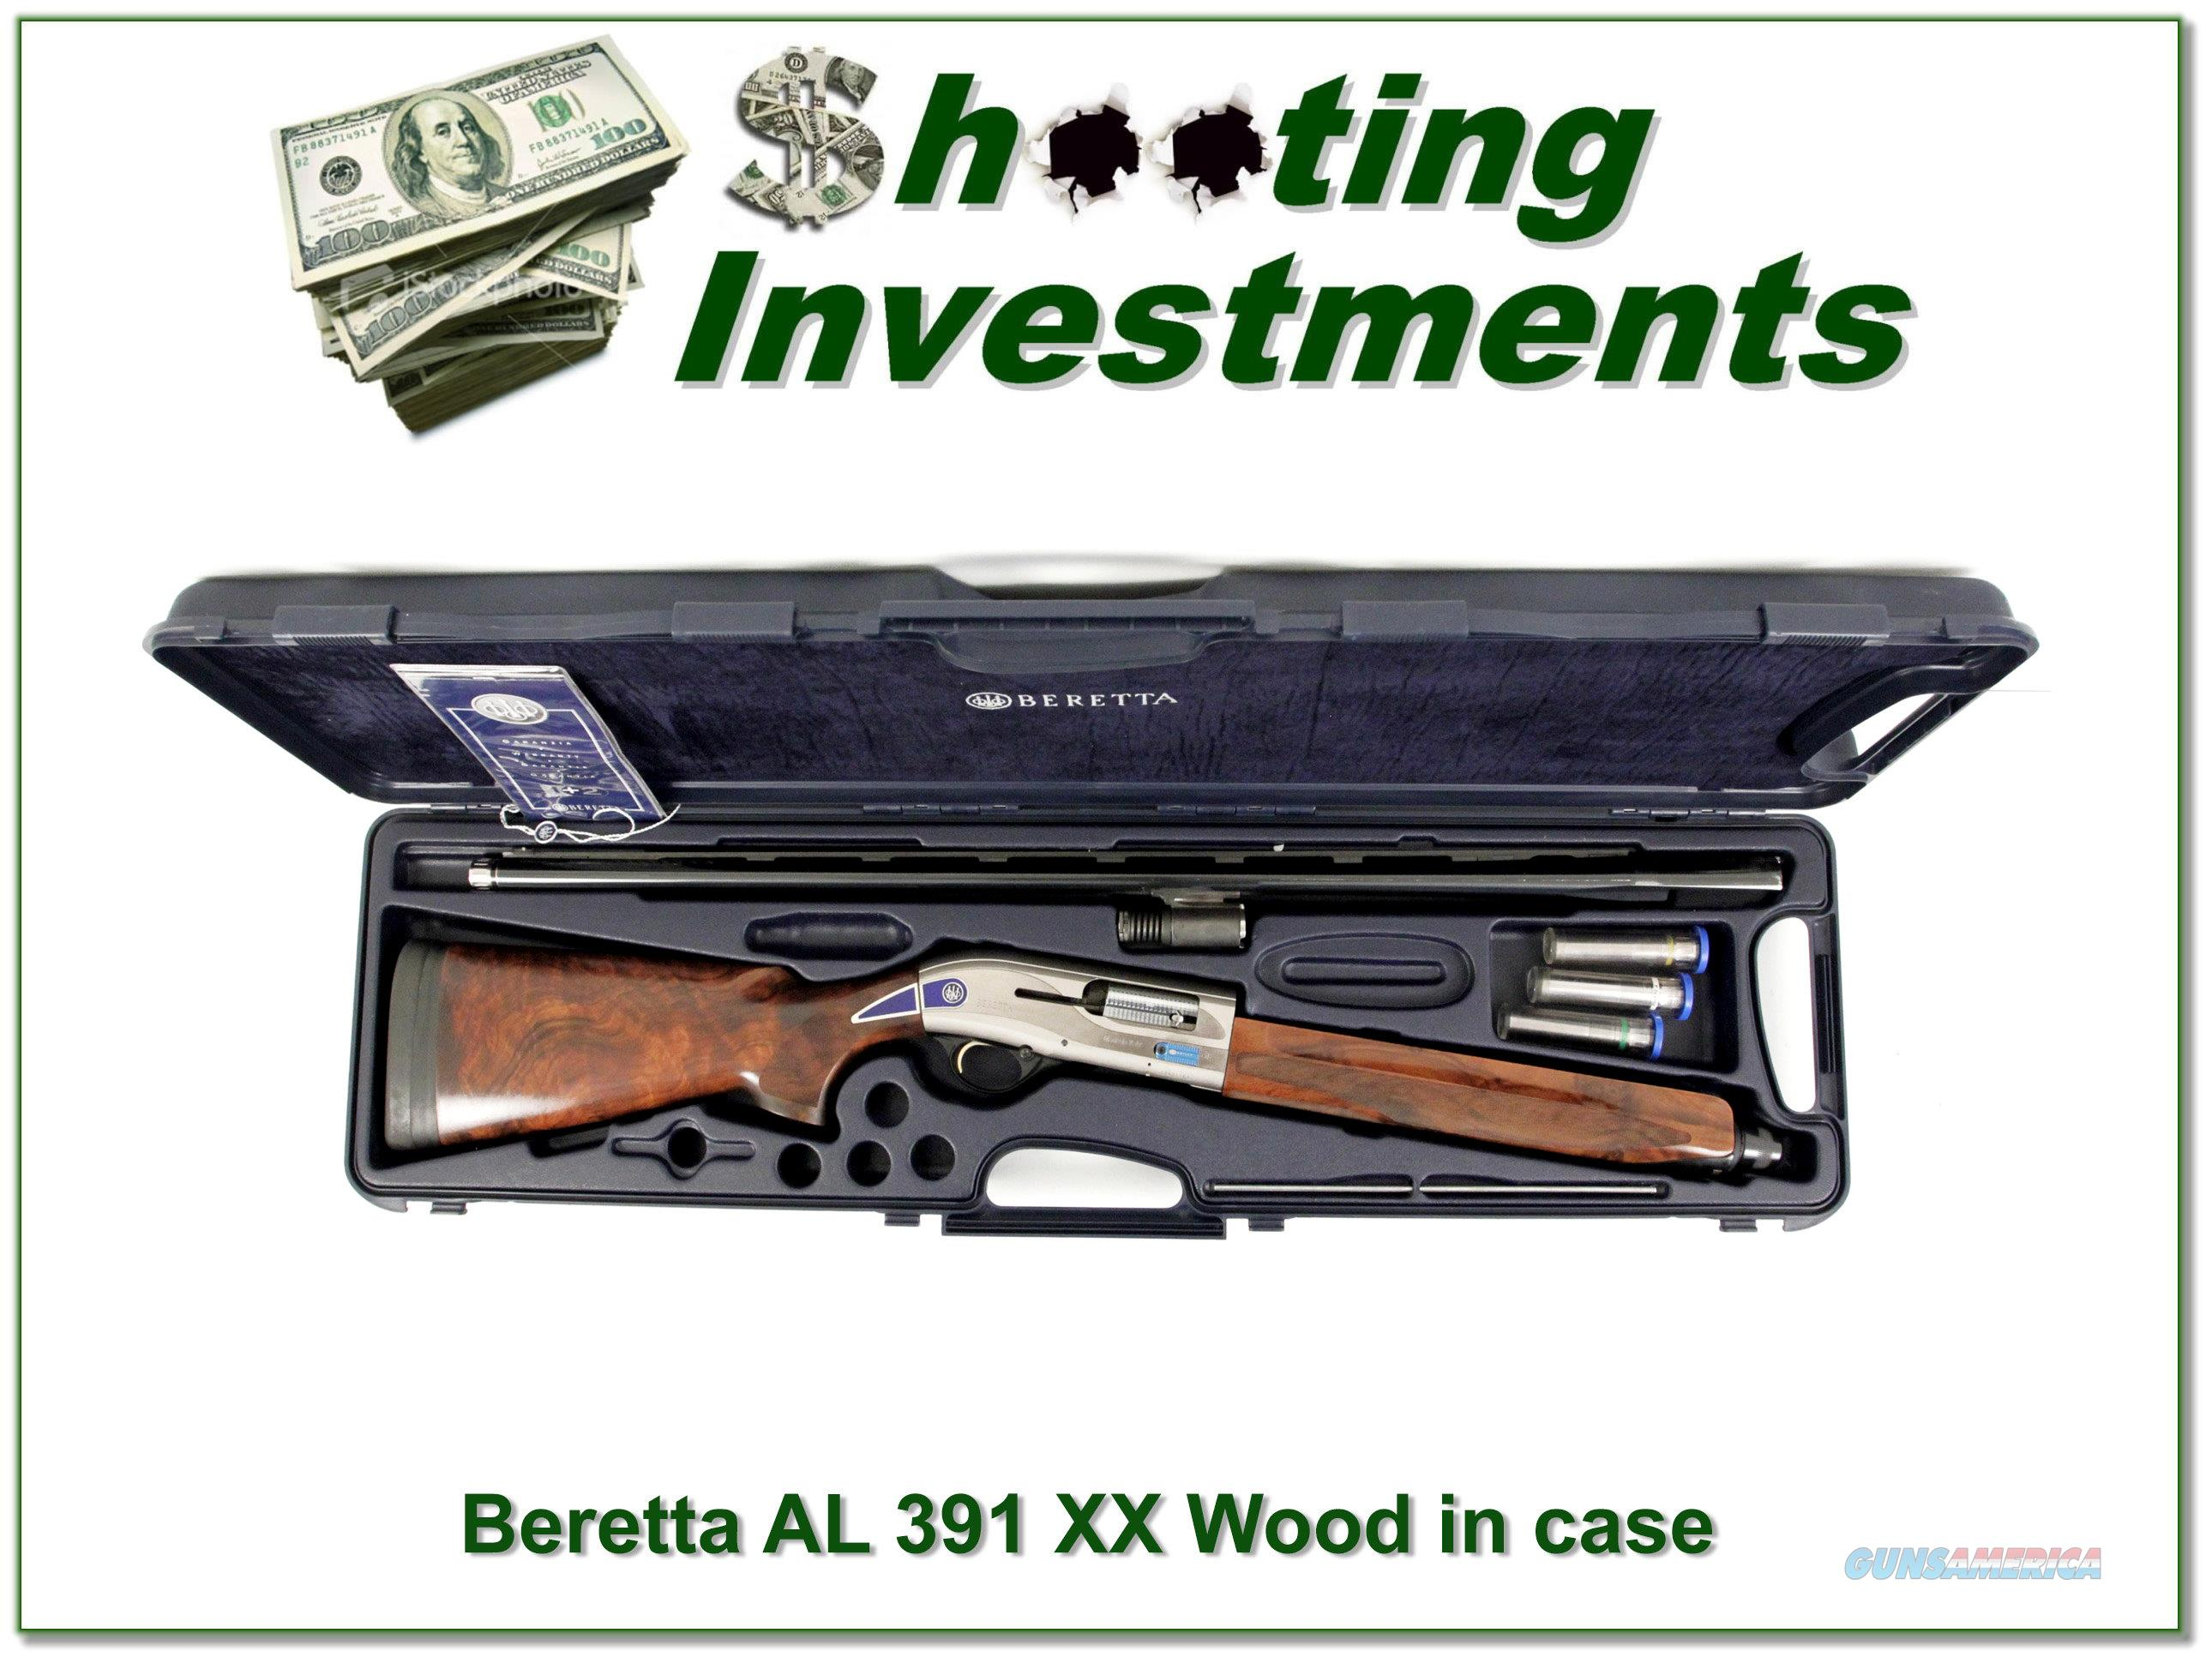 Beretta AL 391 Teknys Gold 12 Gauge 30in XX Wood!  Guns > Shotguns > Beretta Shotguns > Autoloaders > Hunting